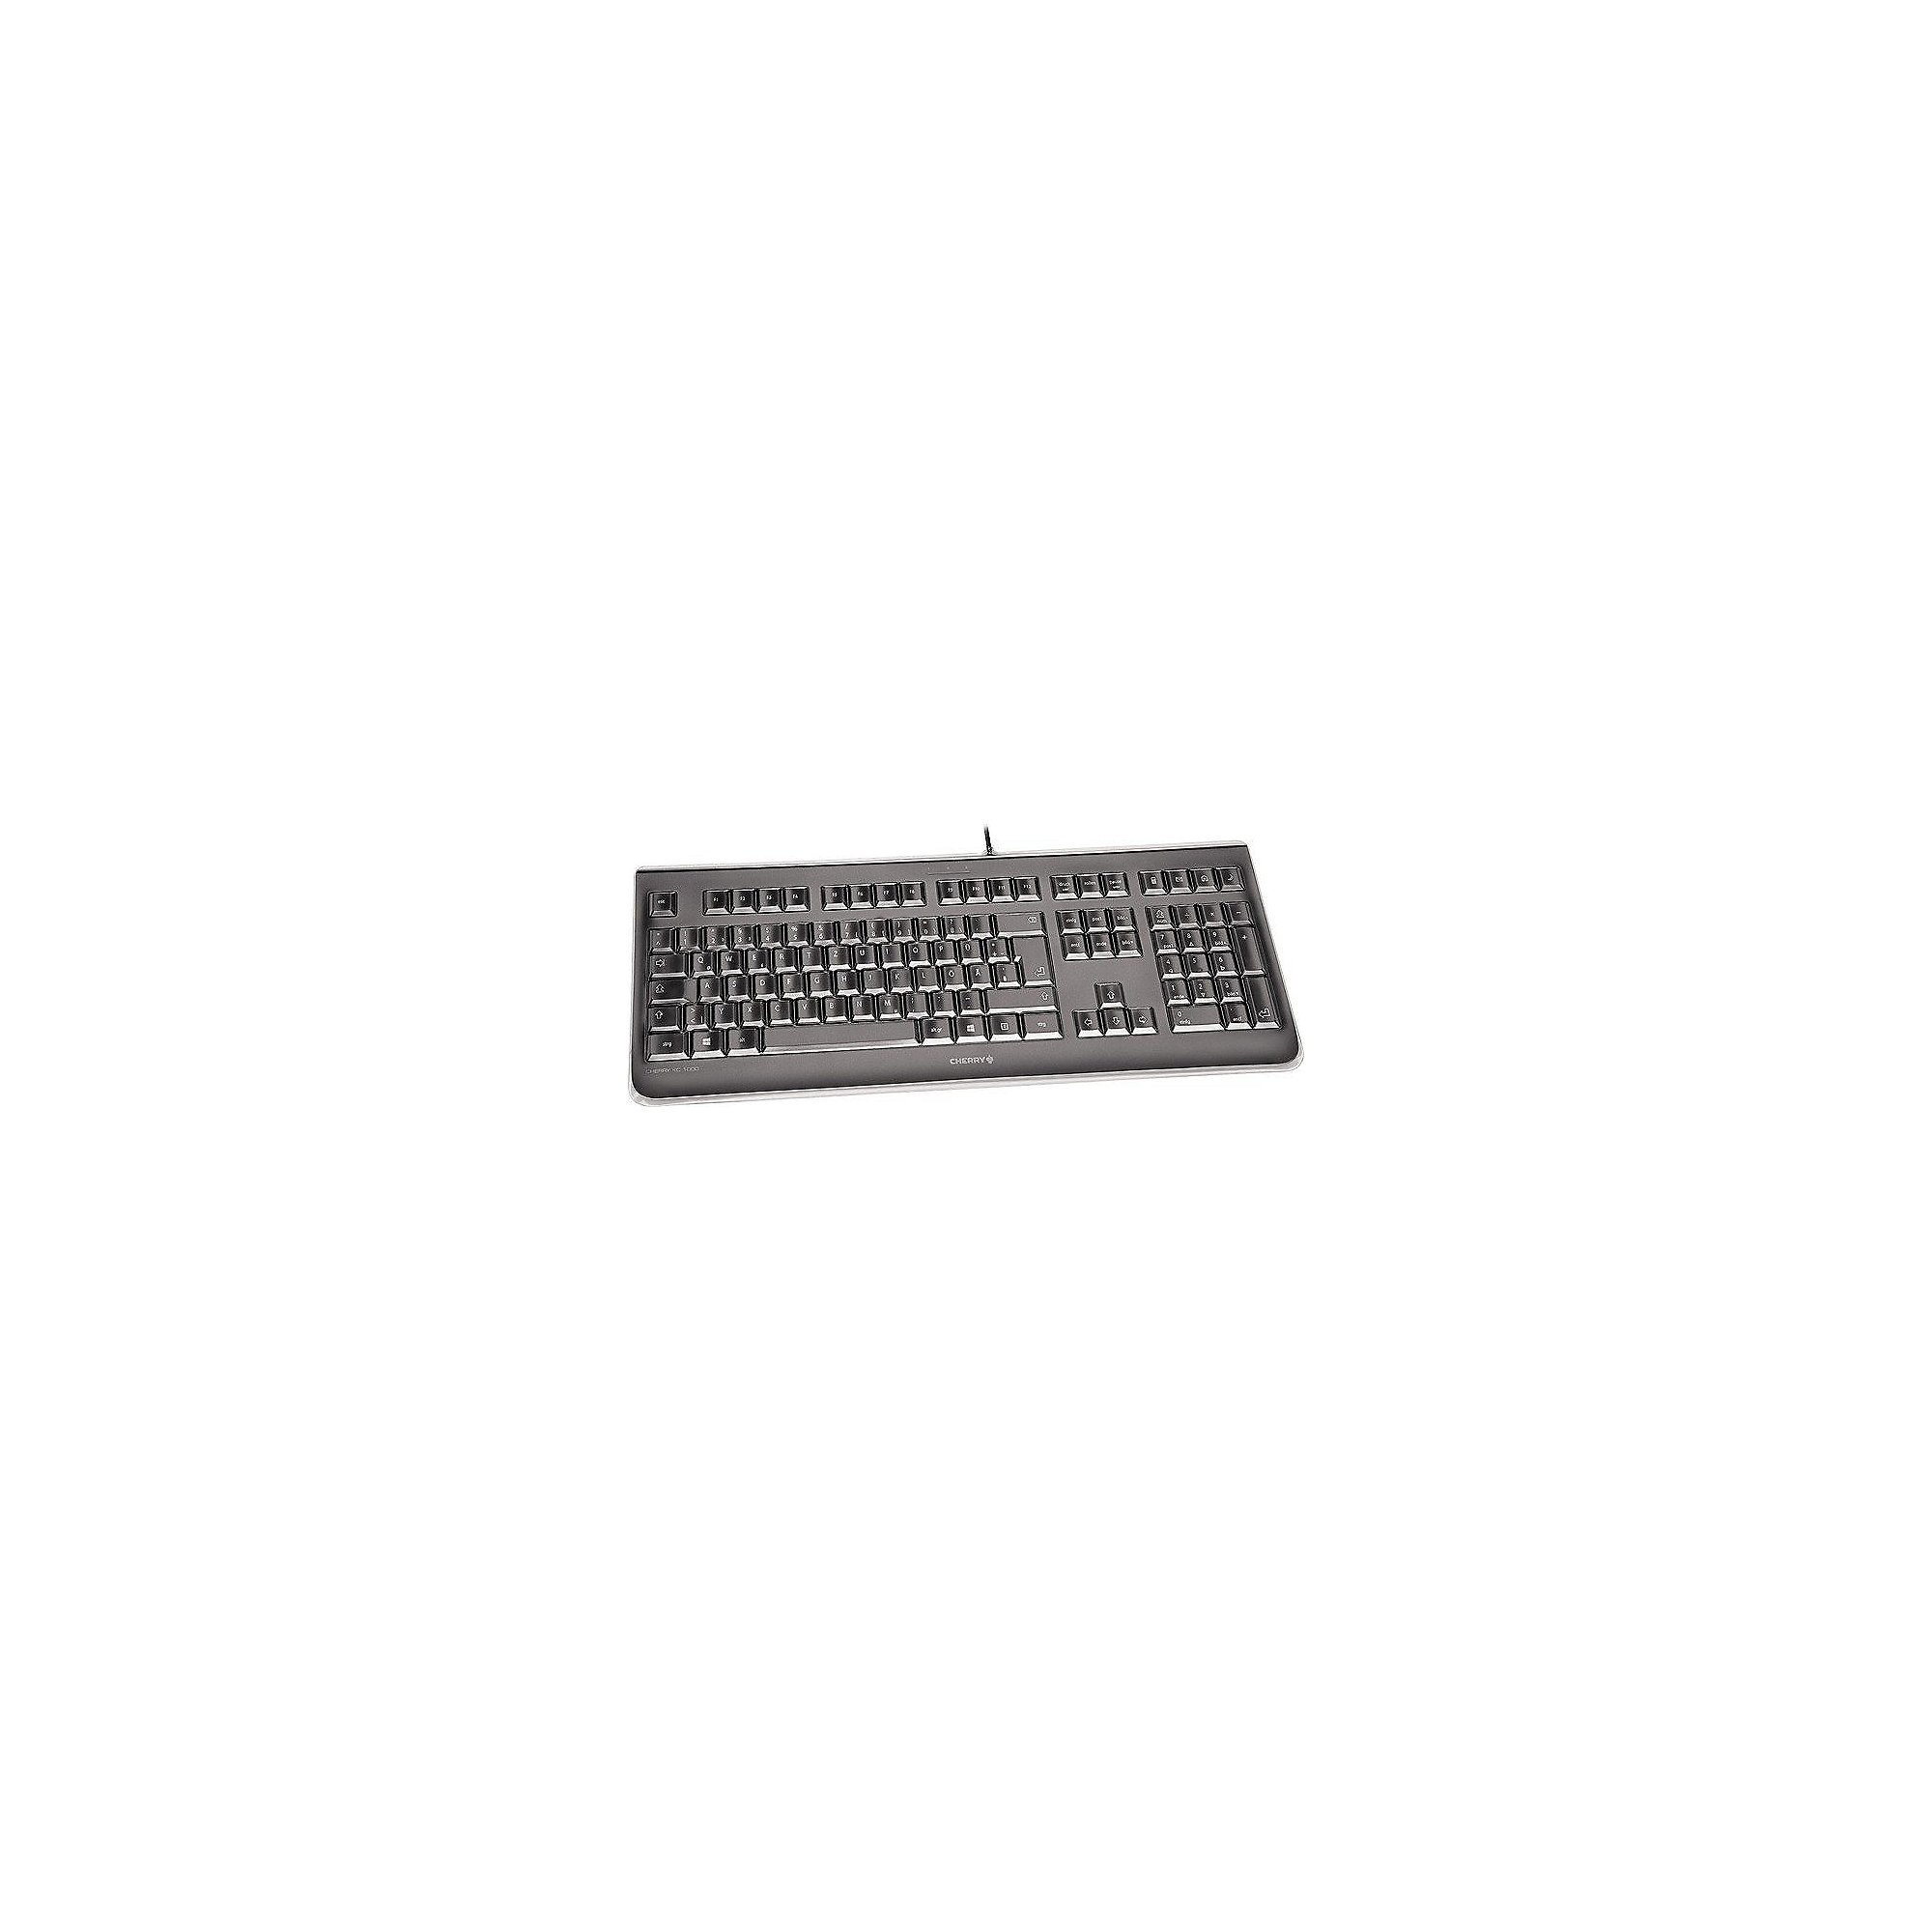 Cherry KC 1068 Corded Keyboard IP68 Protection USB Schwarz